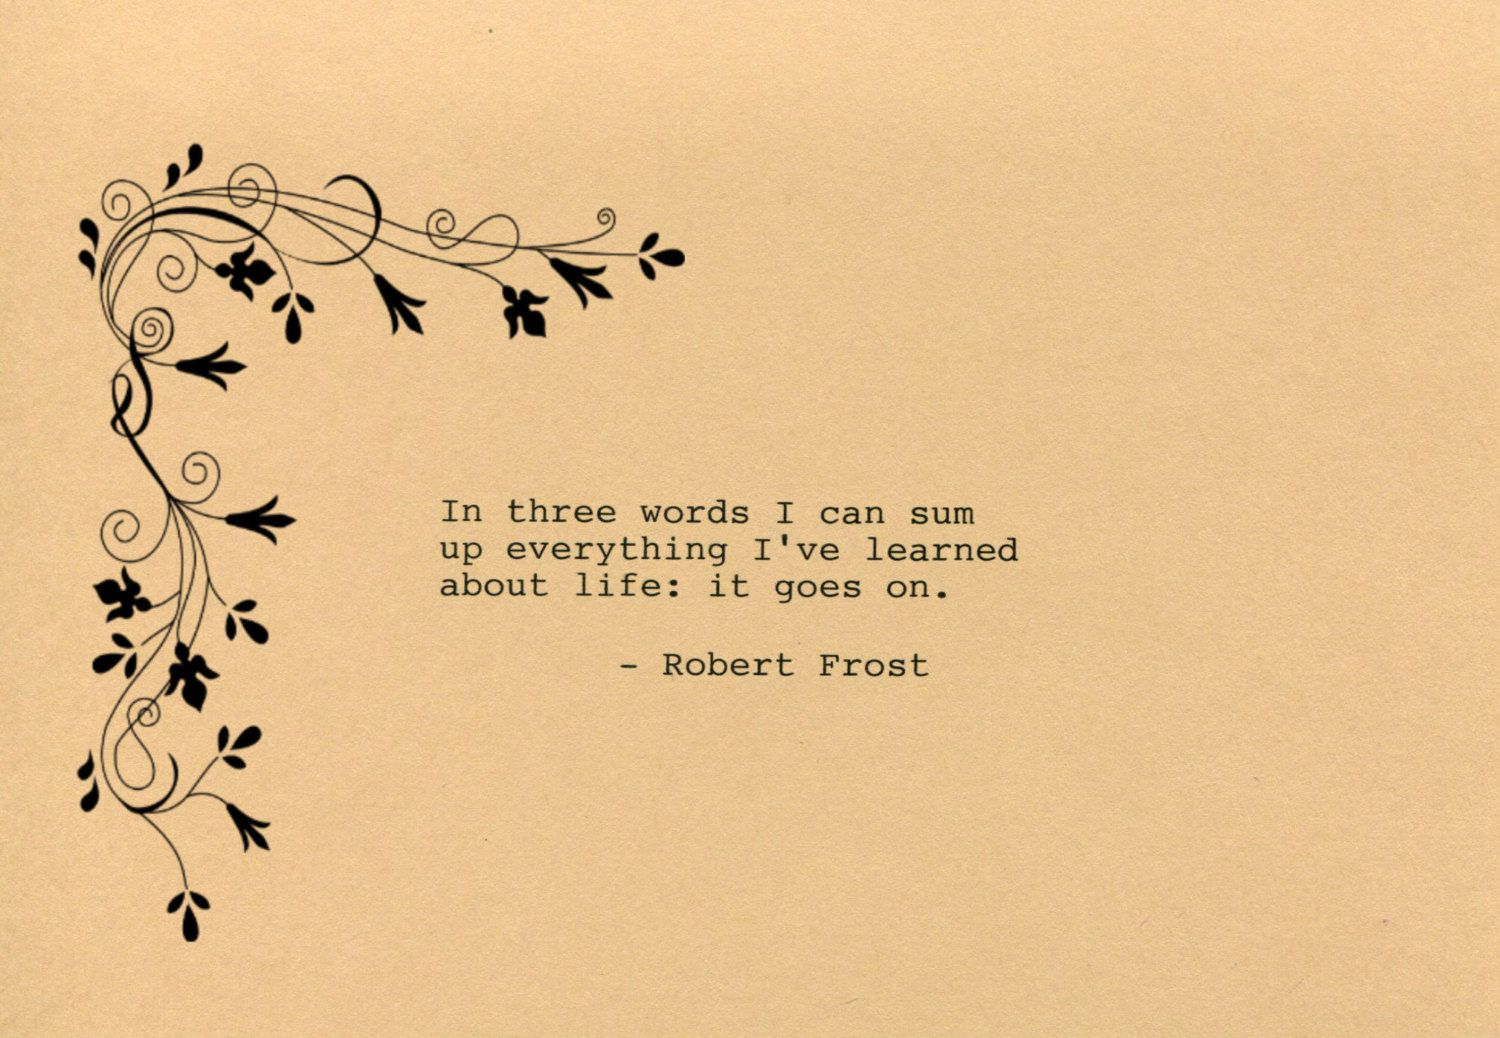 Robert Frost Quote Made on Typewriter Art Quote Wall Art - In three ...